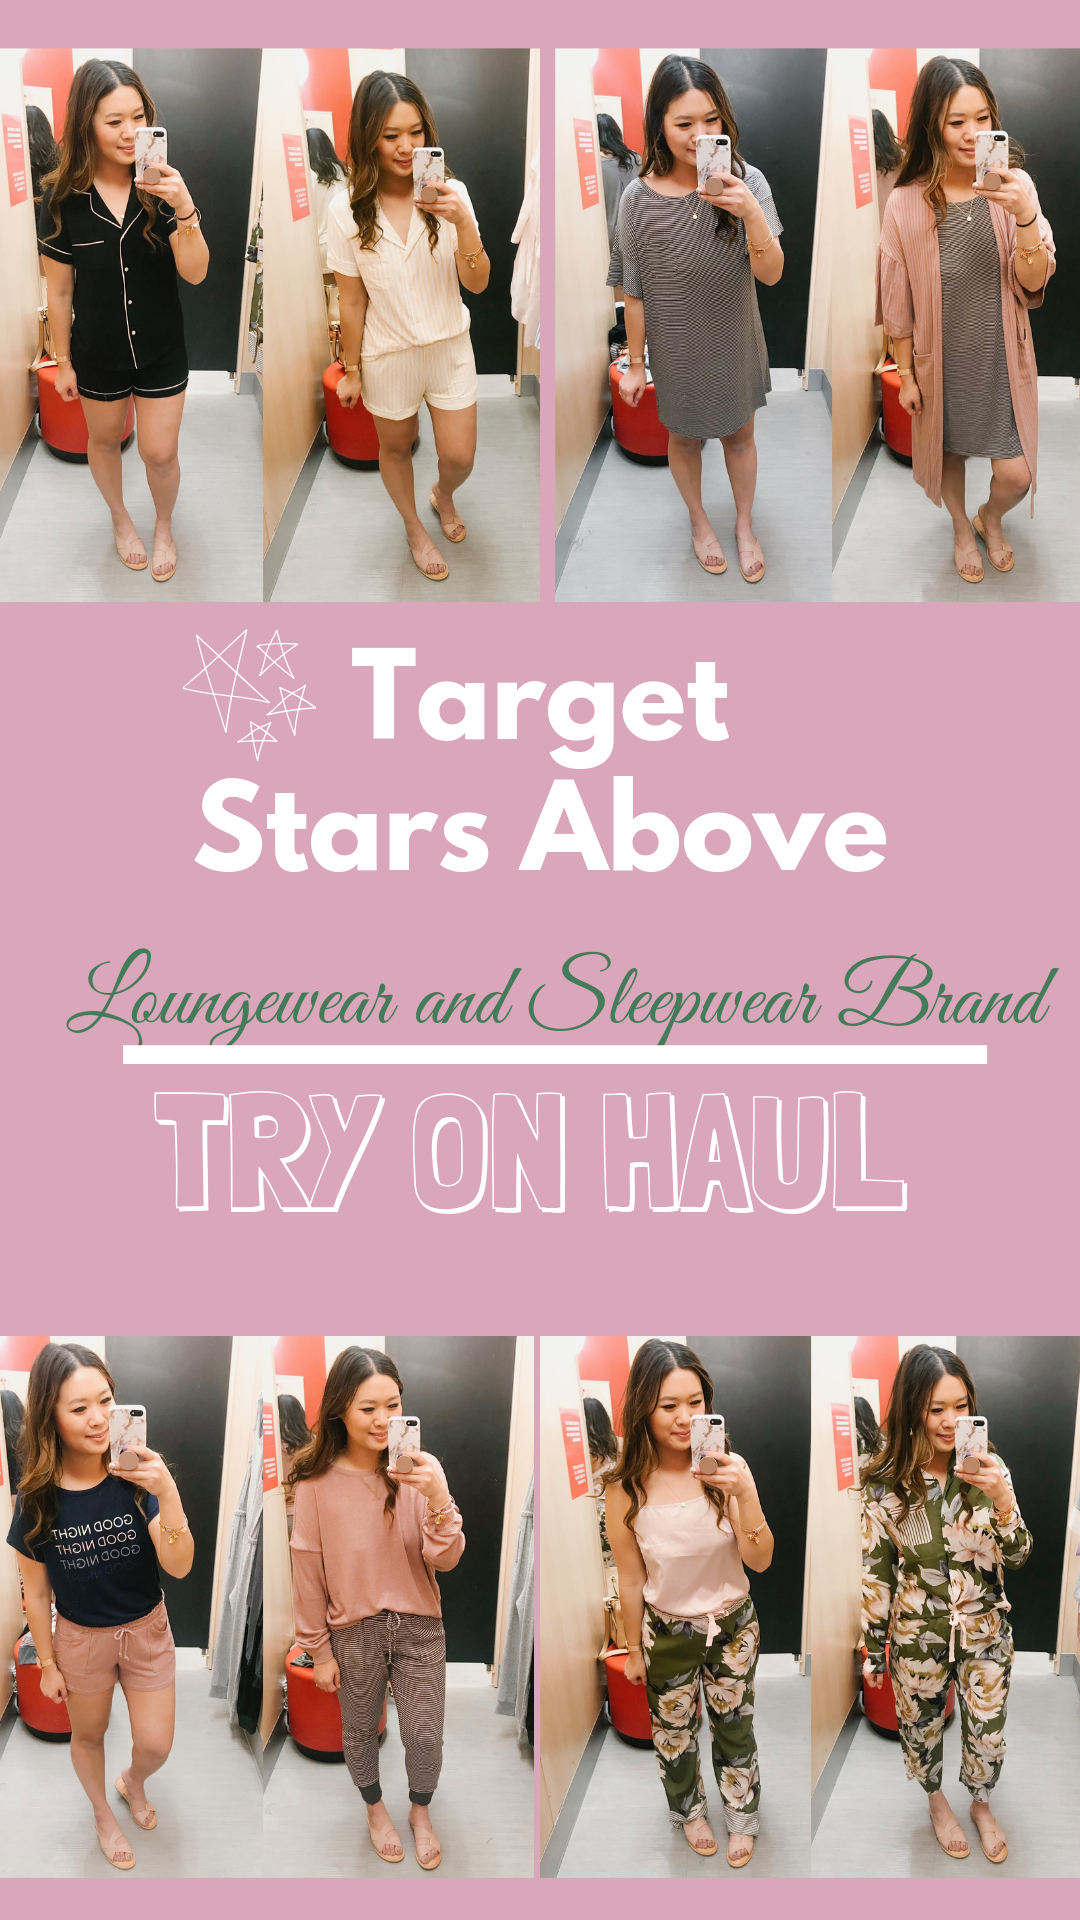 199871c7fa Review Of Target s New Loungewear and Sleepwear Brand - Stars Above